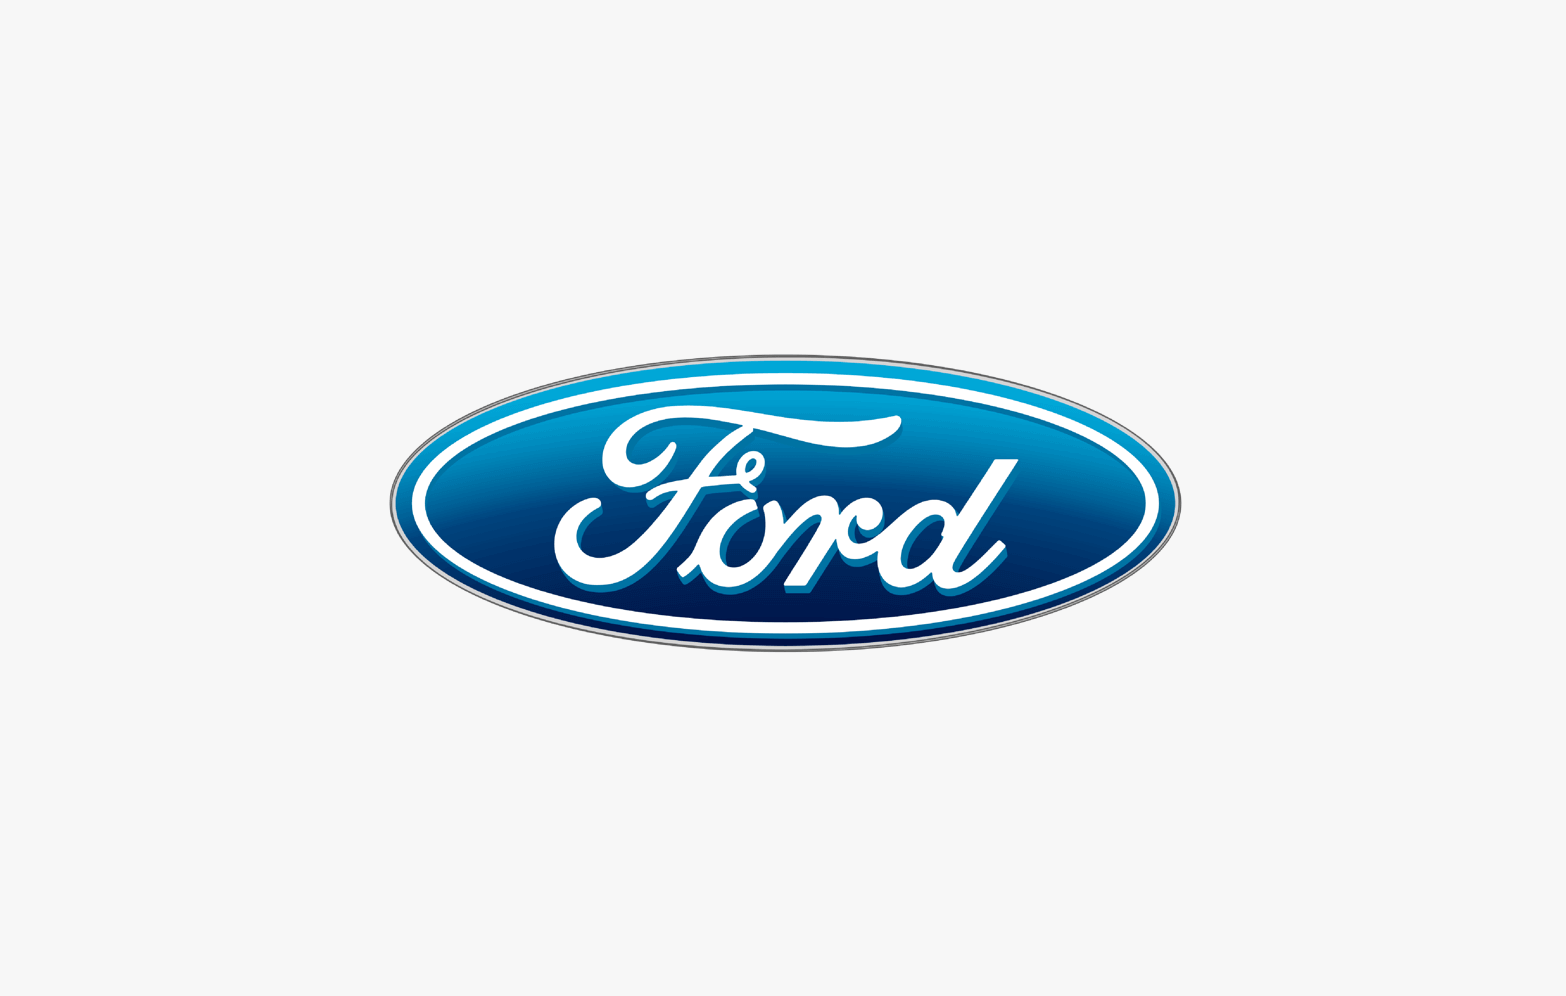 Social media analytics and insights on ford